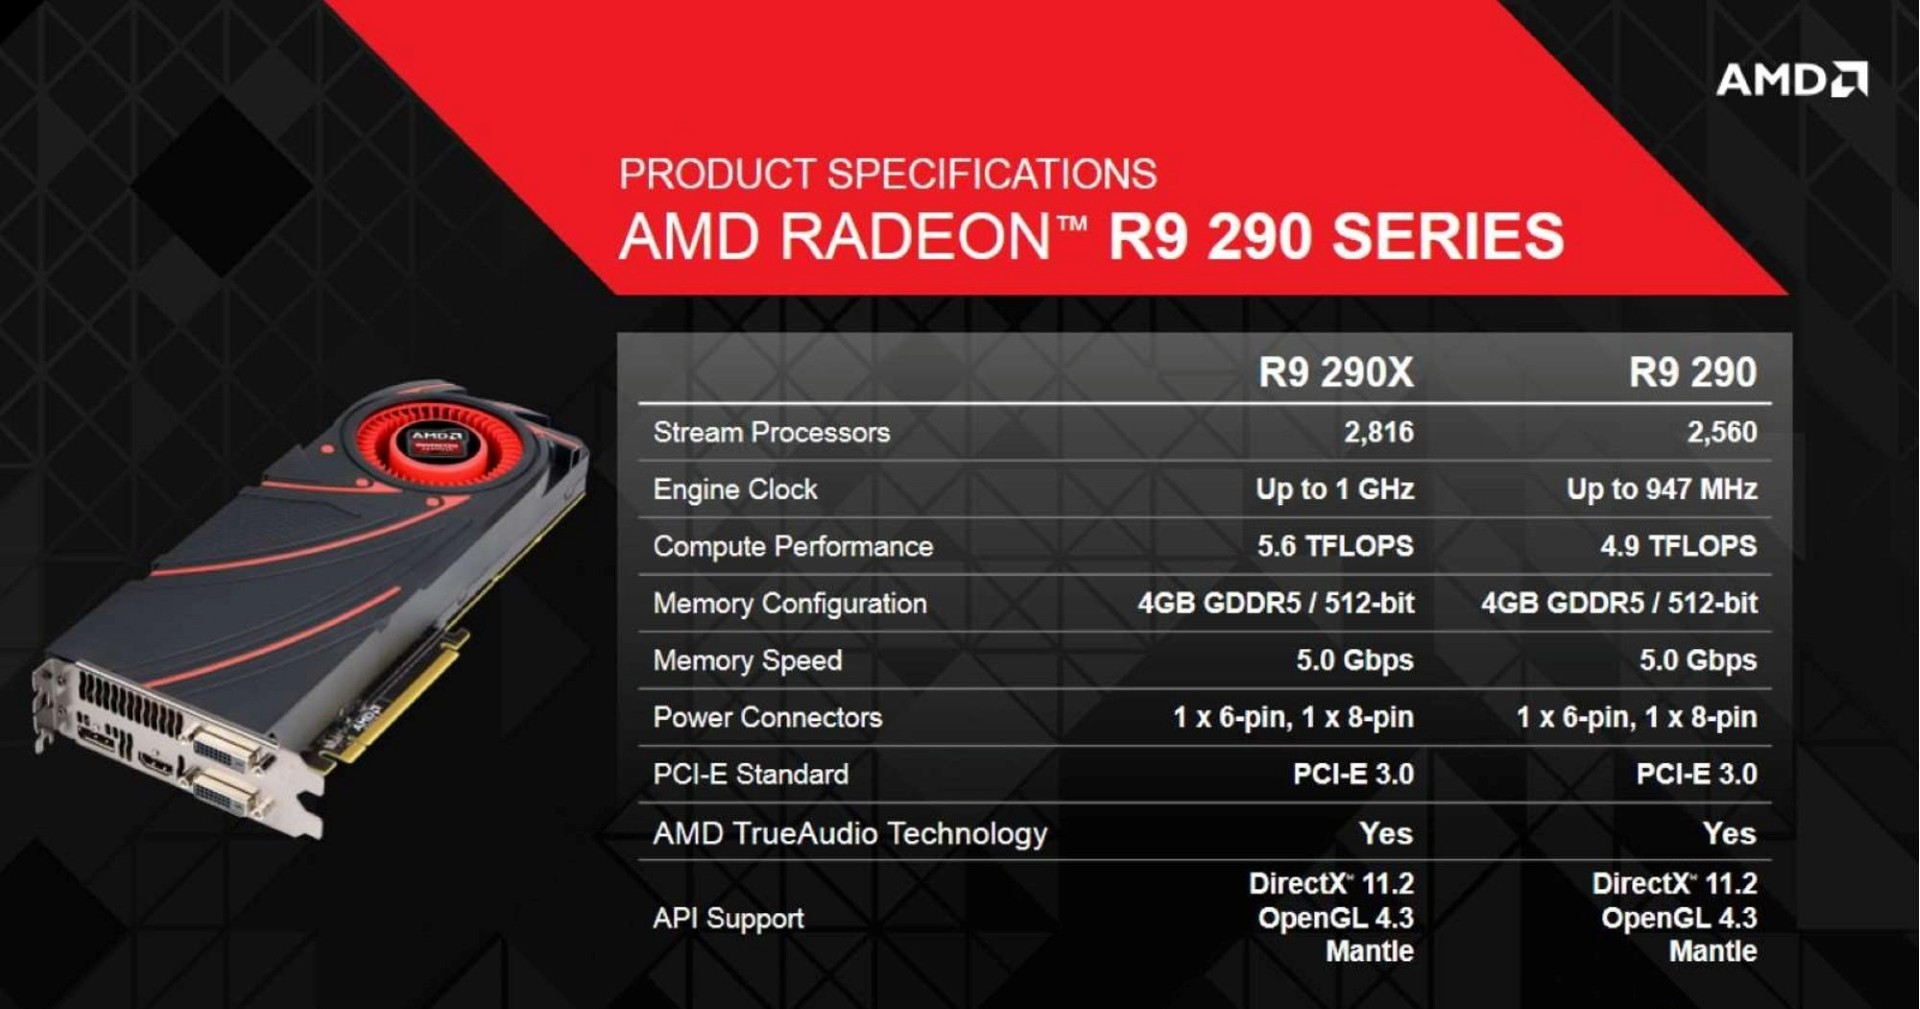 AMD Catalyst 14.7 RC3 Driver Details, Specs and Download Information